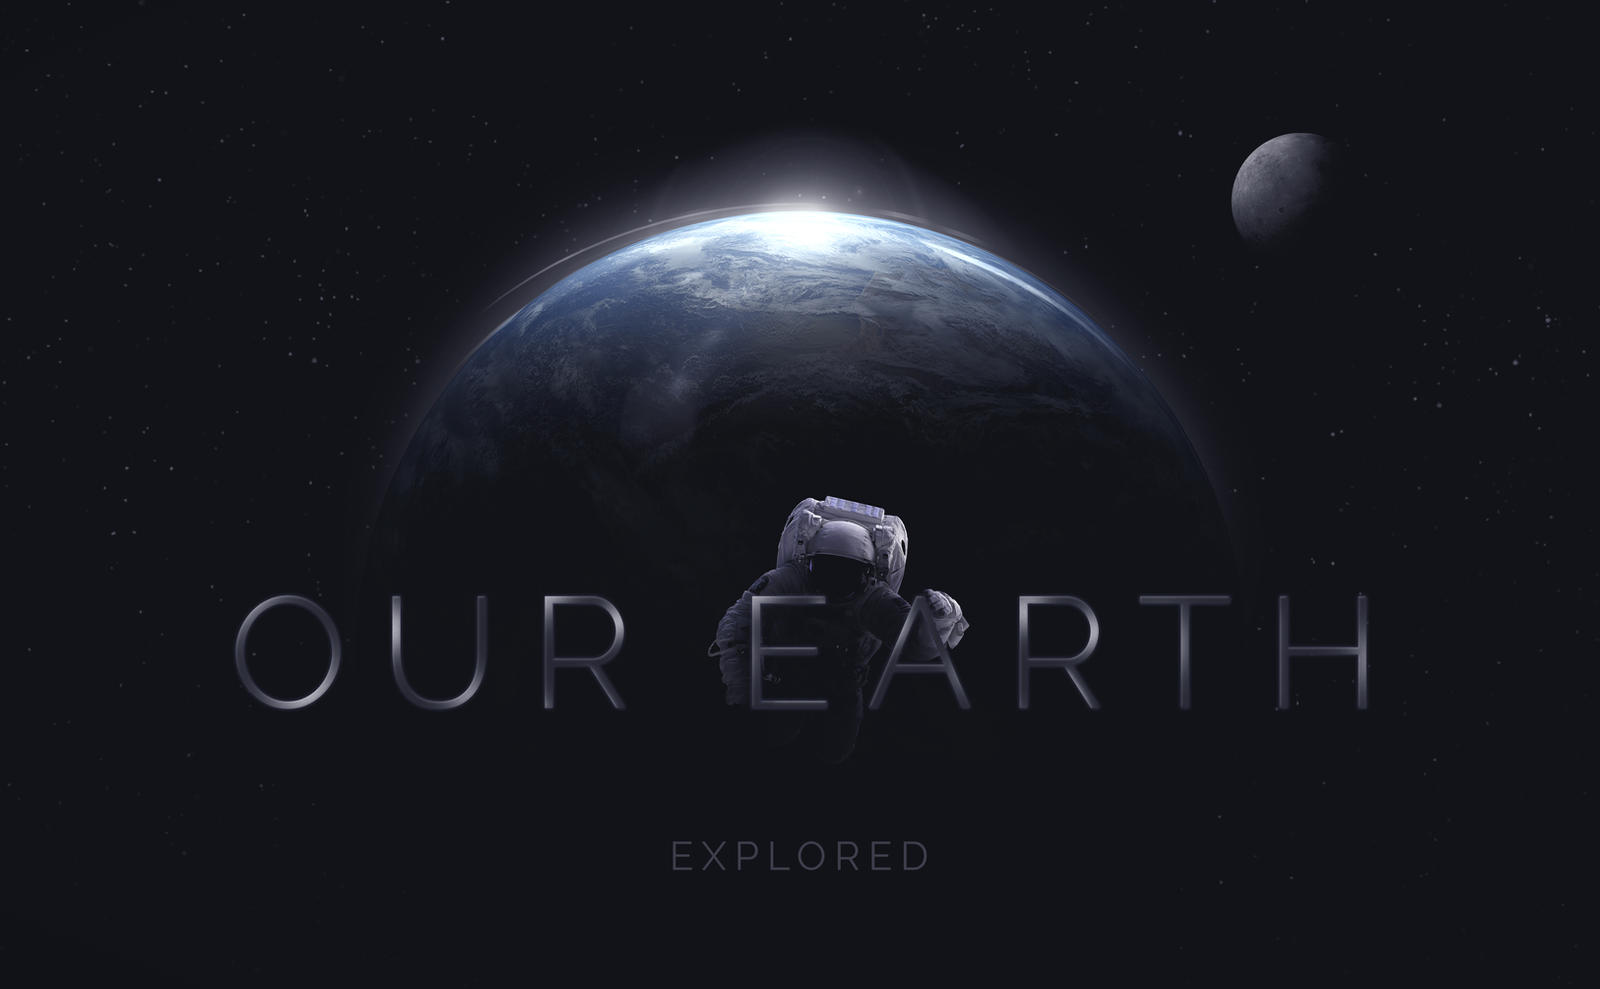 Our Earth by bazikg